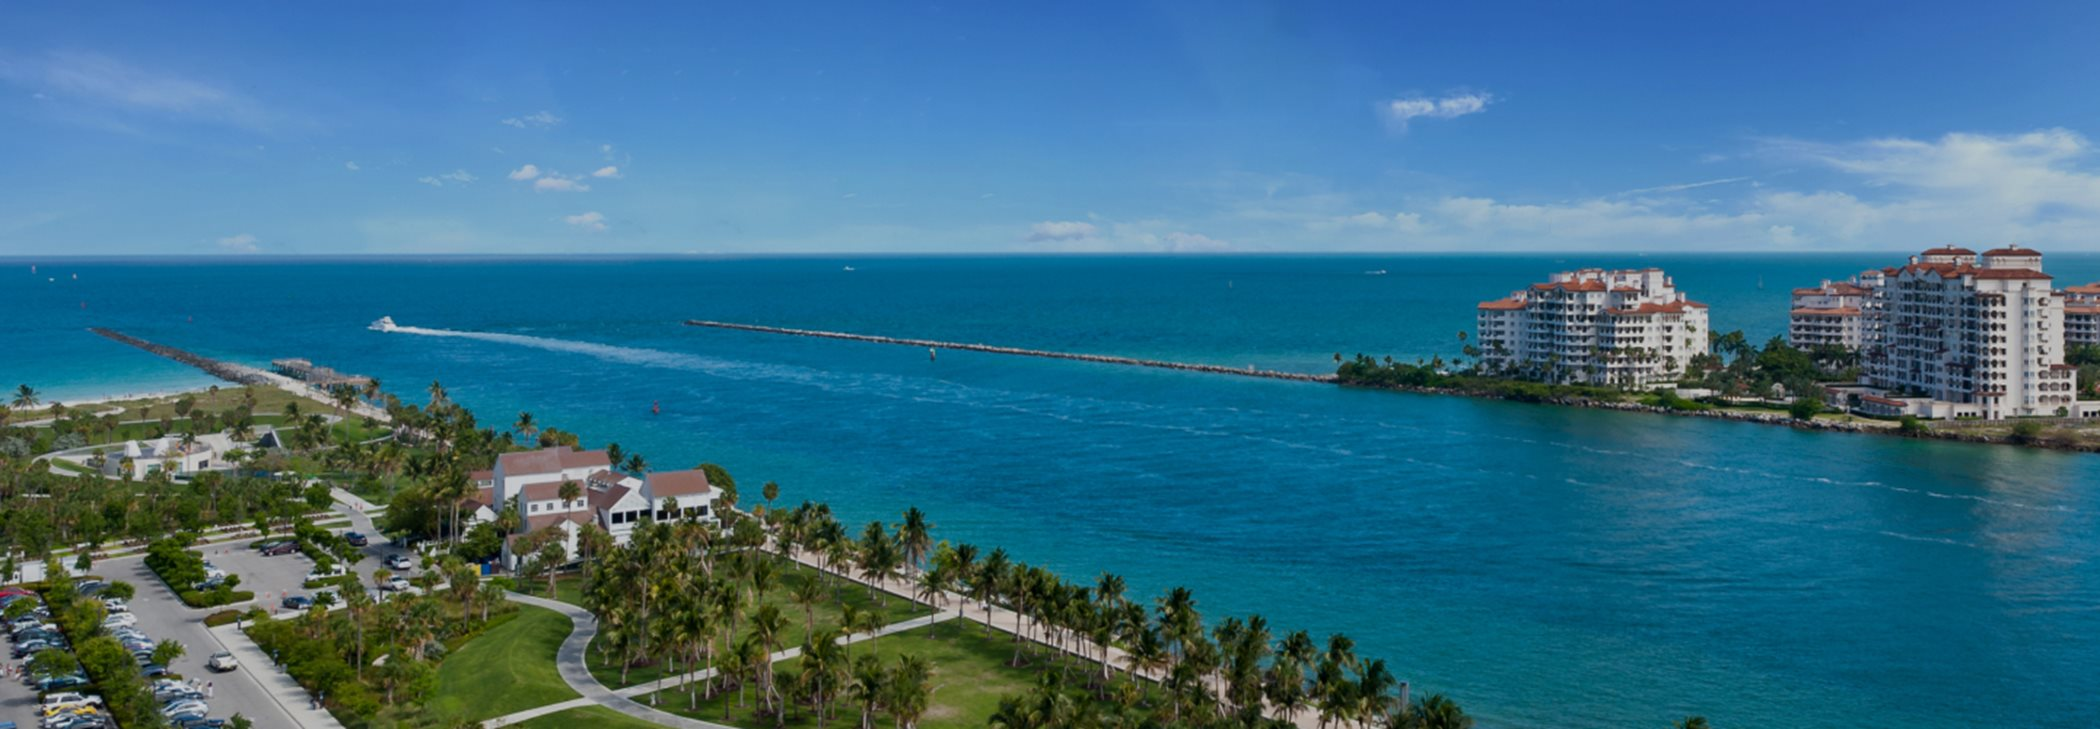 Miami South Pointe Park and Fisher Island